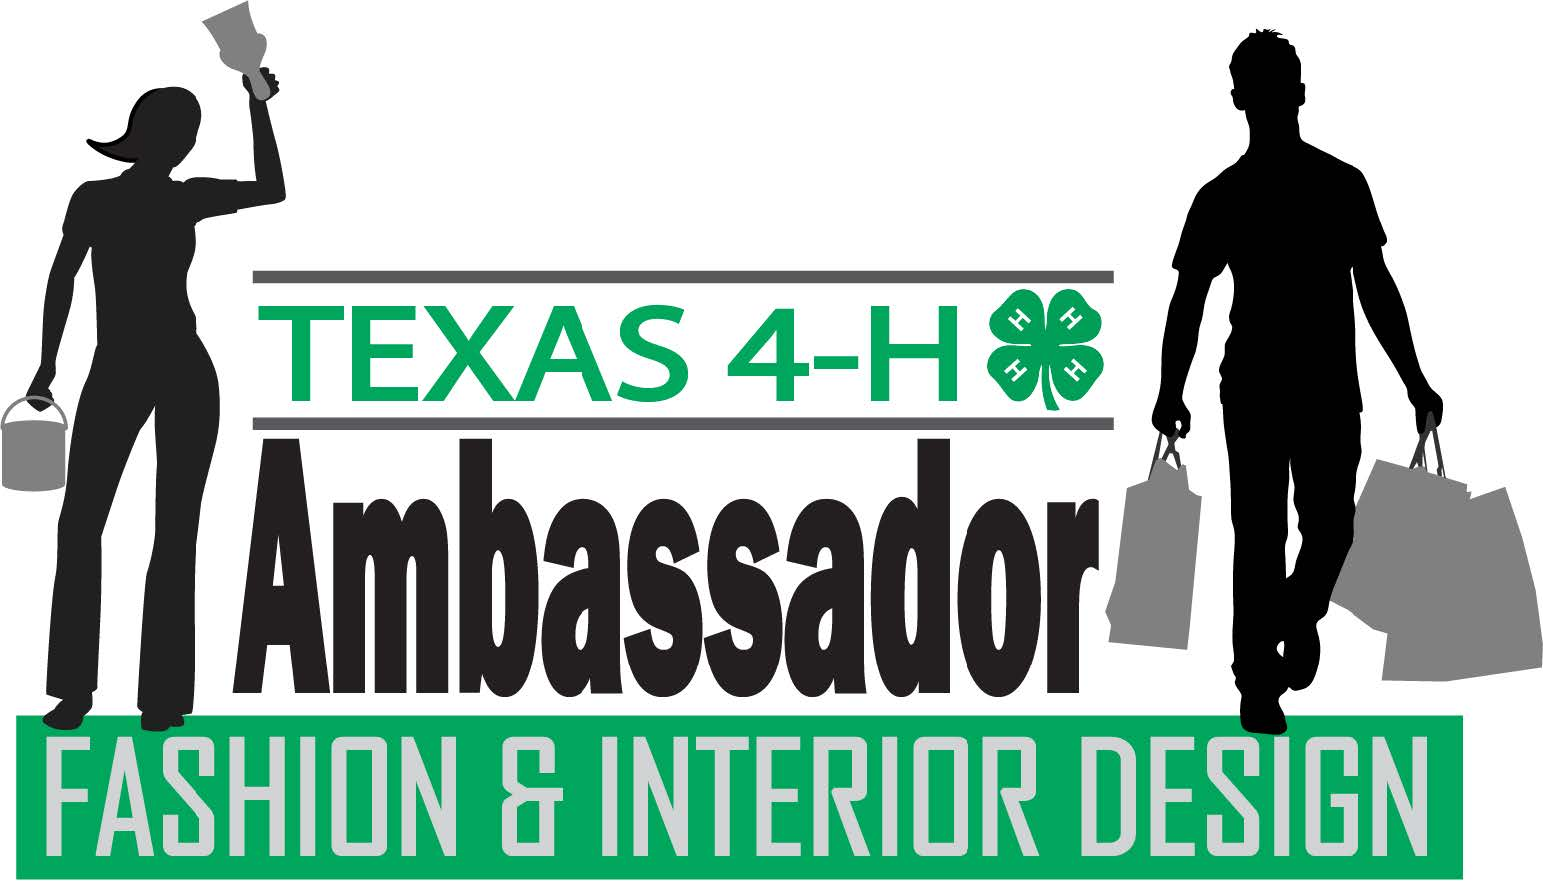 Texas 4 H Practitioner S Blog New Texas 4 H Fashion Interior Design Ambassador Program